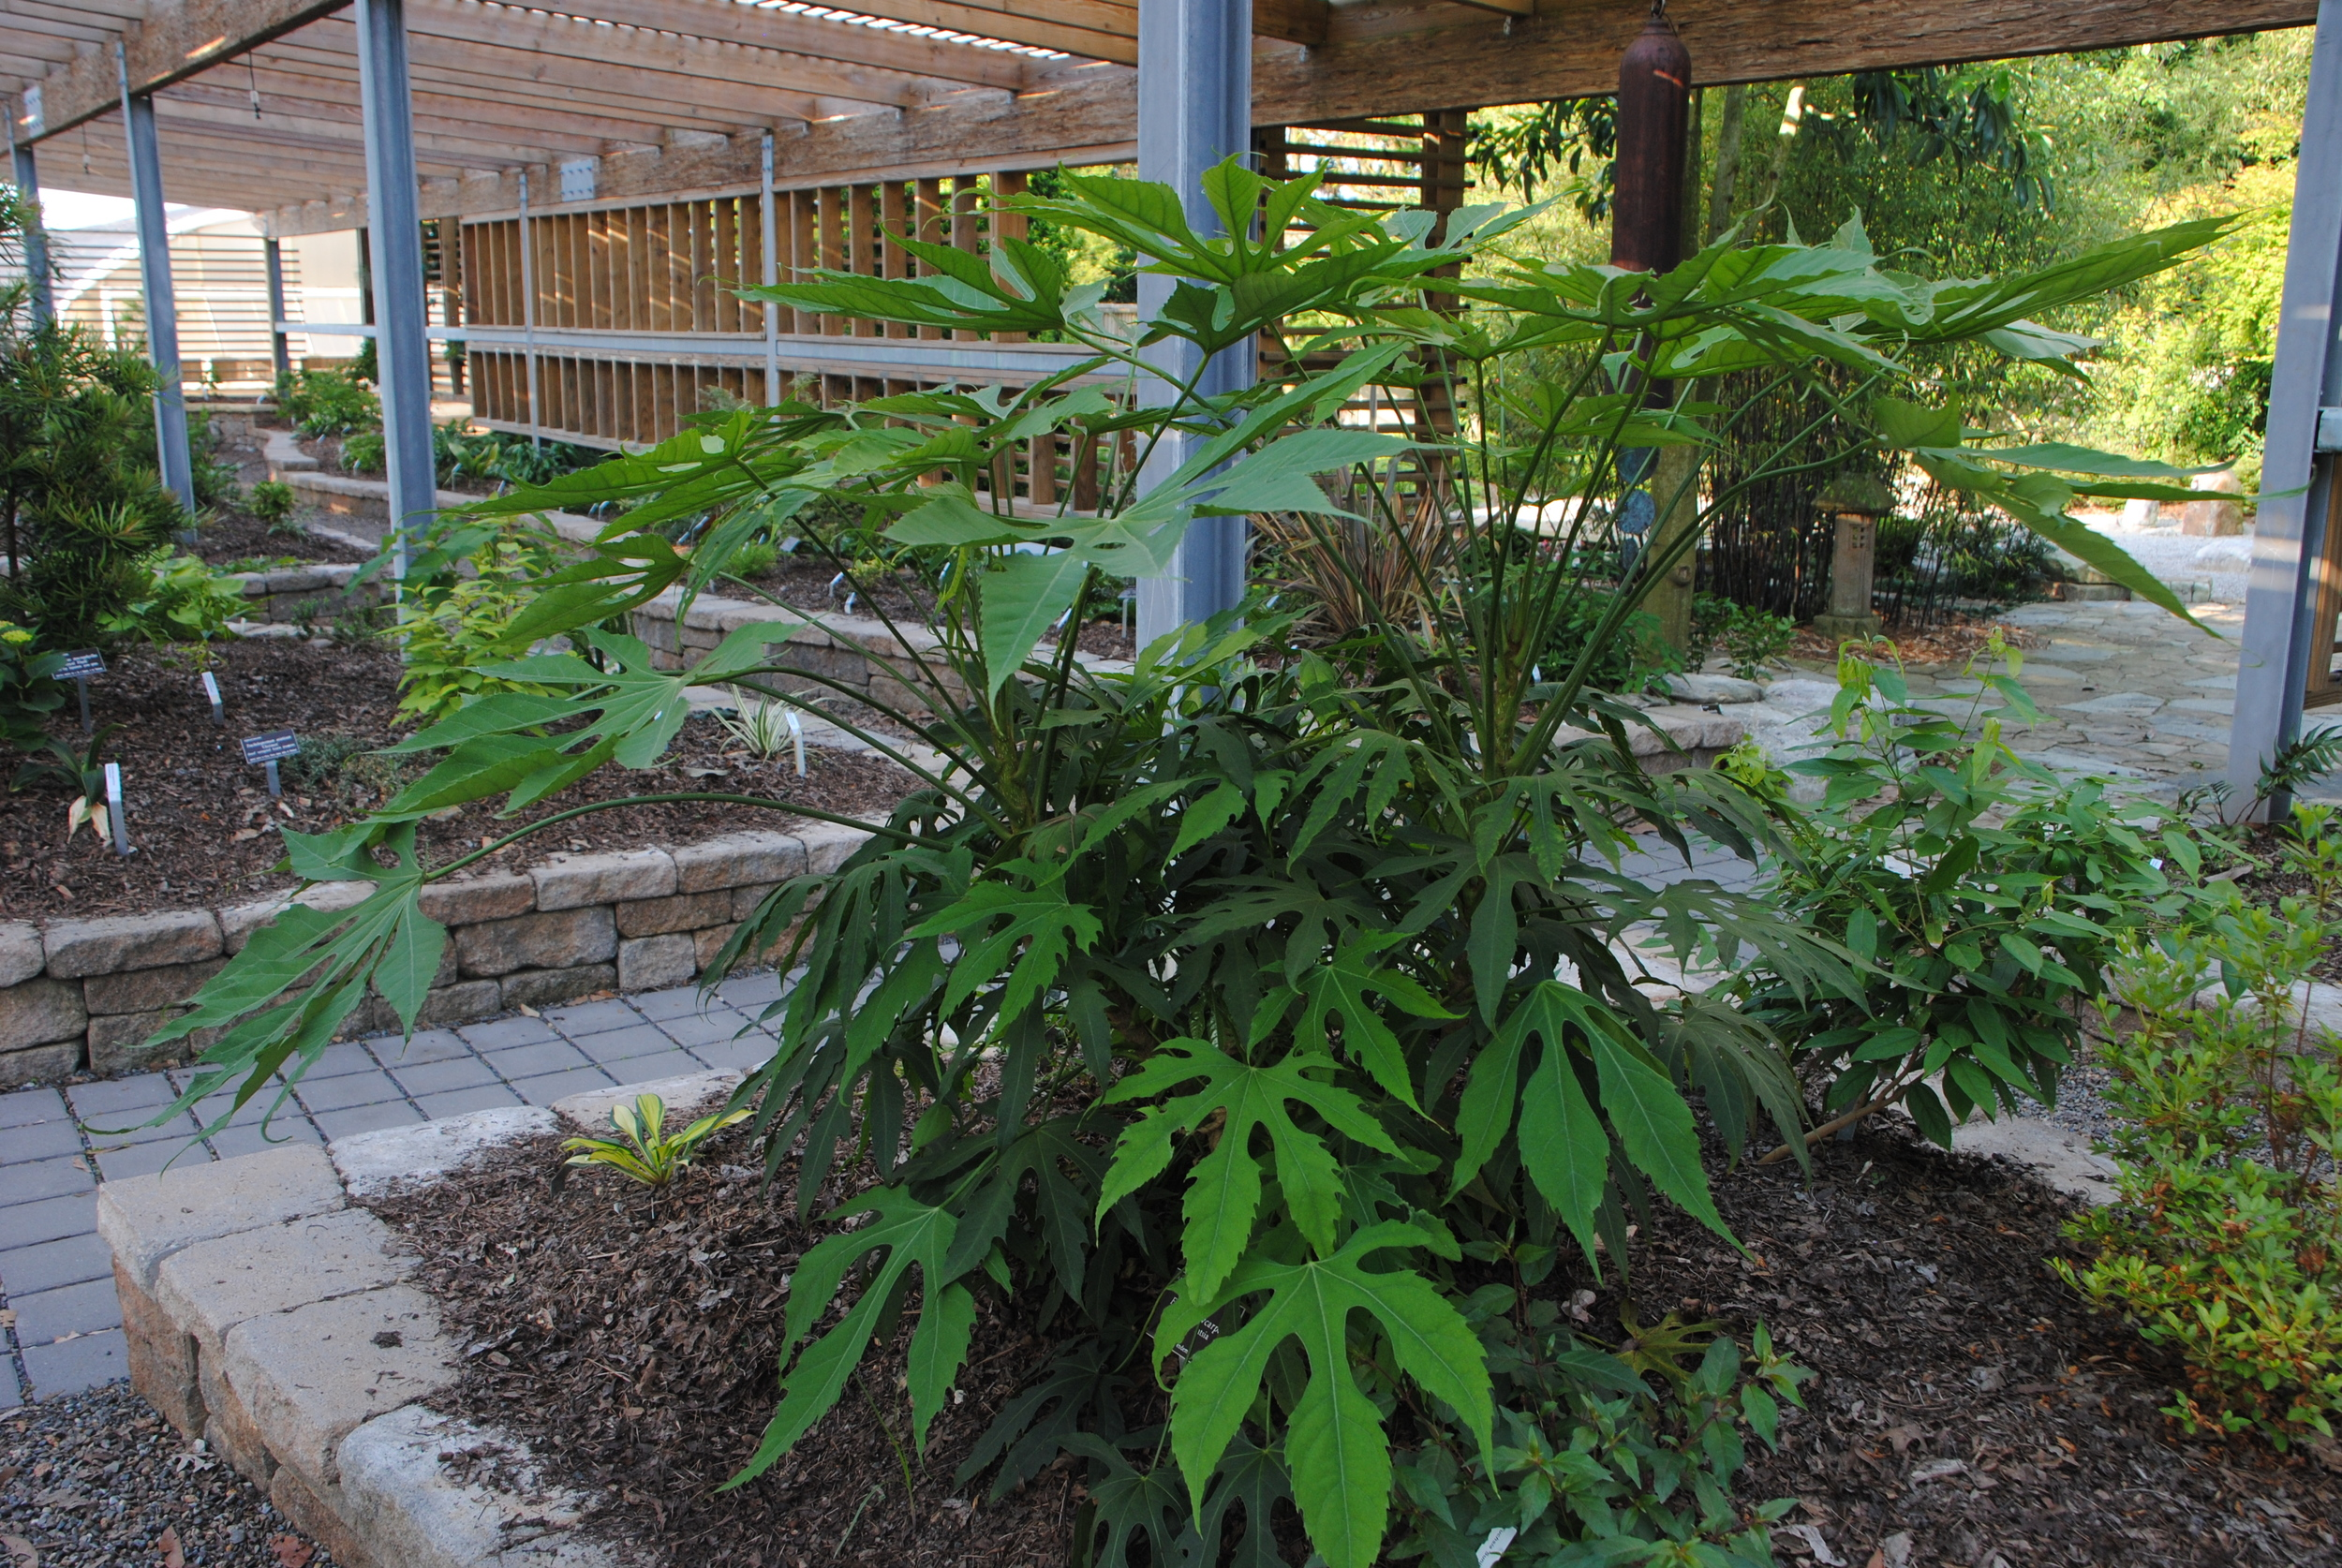 Long petioles, large leaves evergreen leaves, and quick growth make this an outstanding plant.